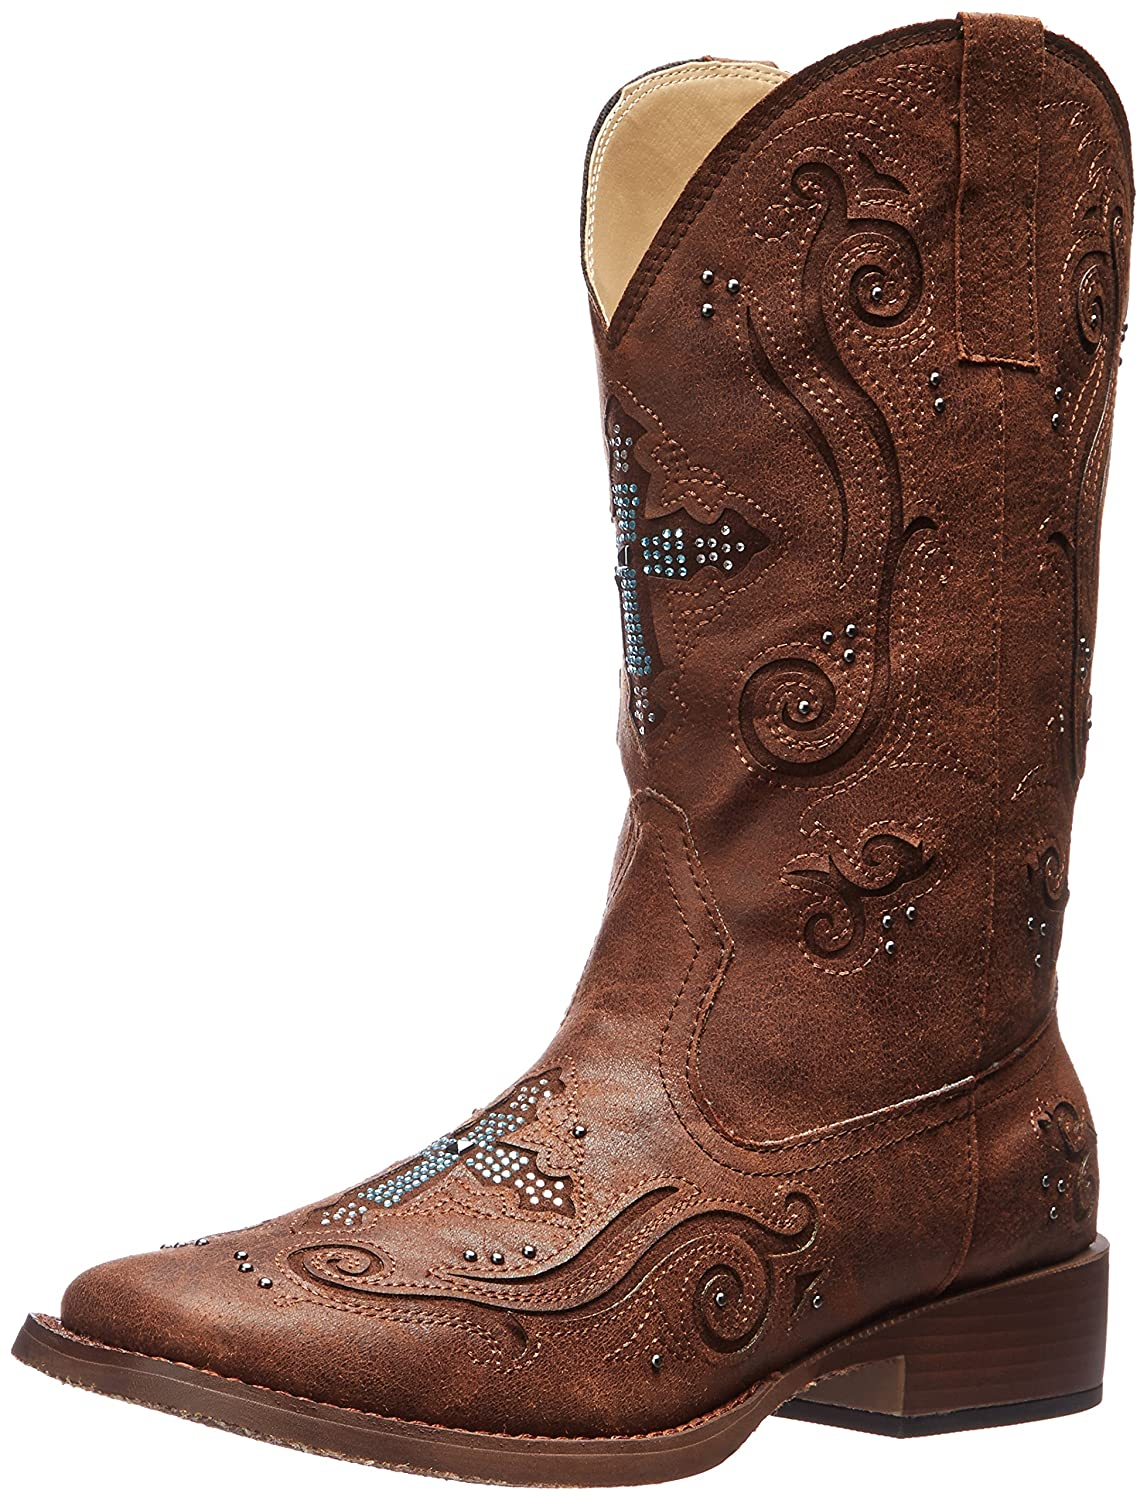 Roper Women's Crossed Out Western Boot B00JE8XT8O 7 B(M) US|Brown